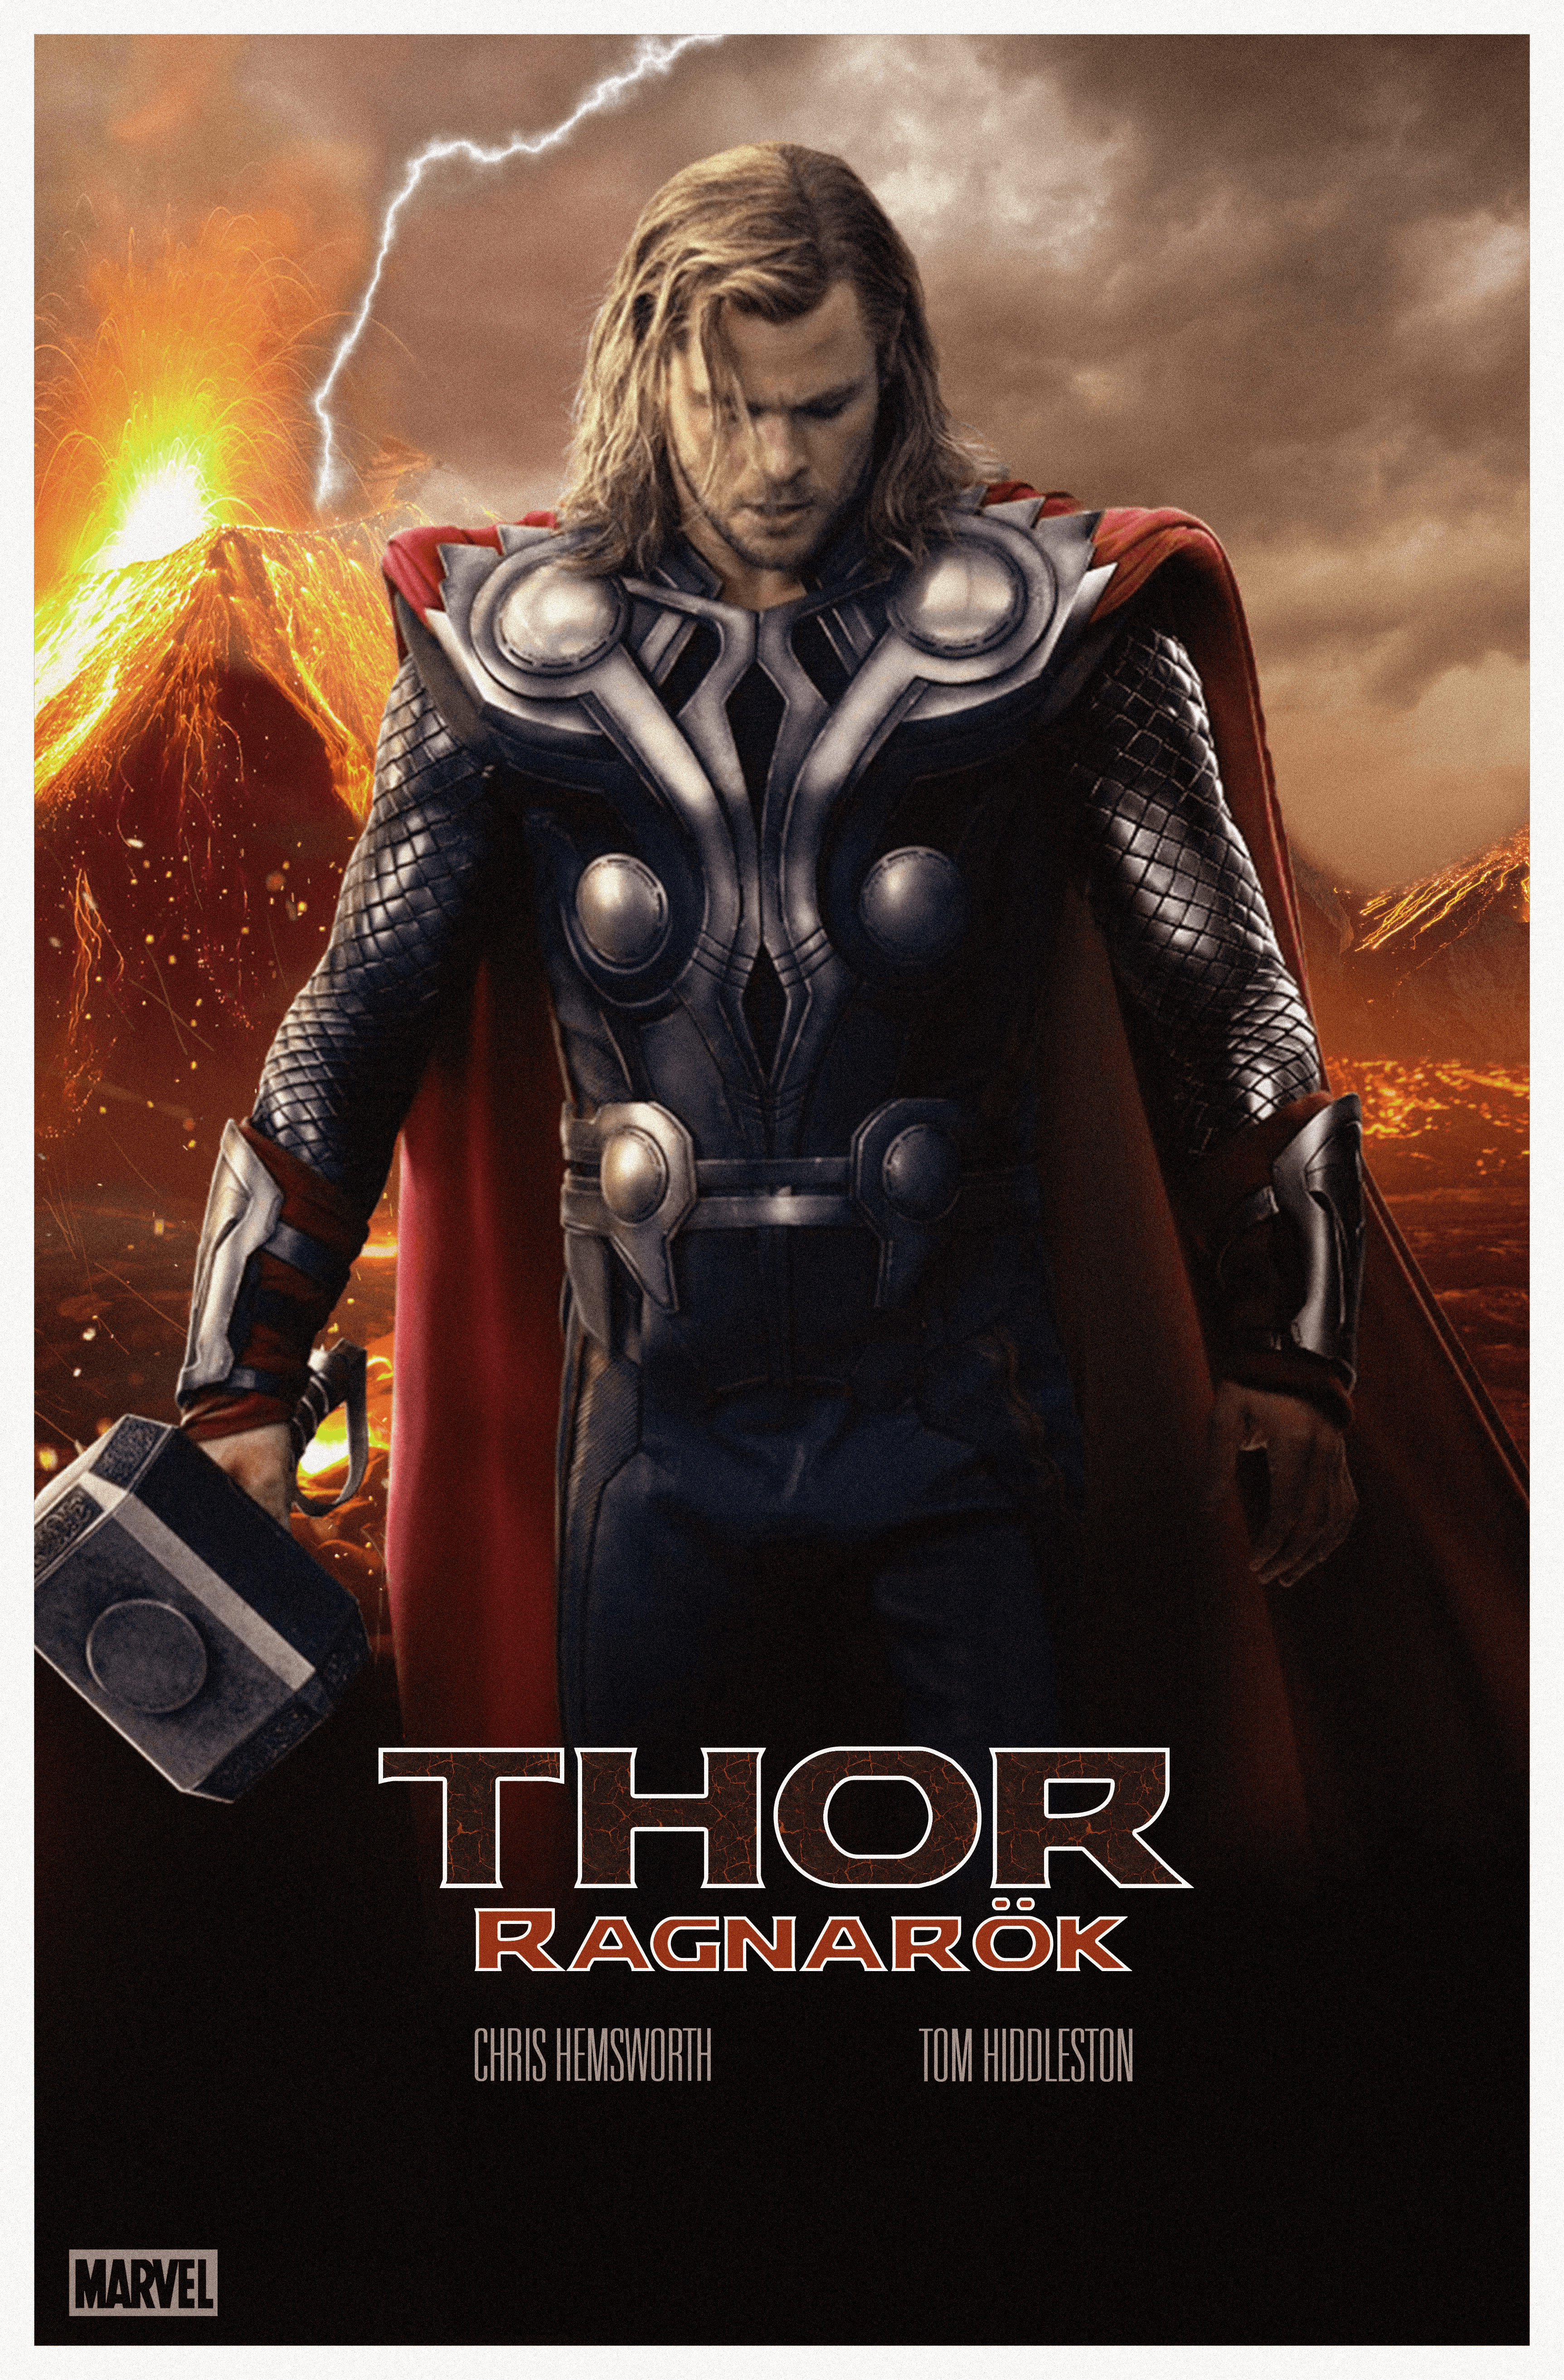 Thor Ragnarok Download With Wallpapers High Quality Resolution ...